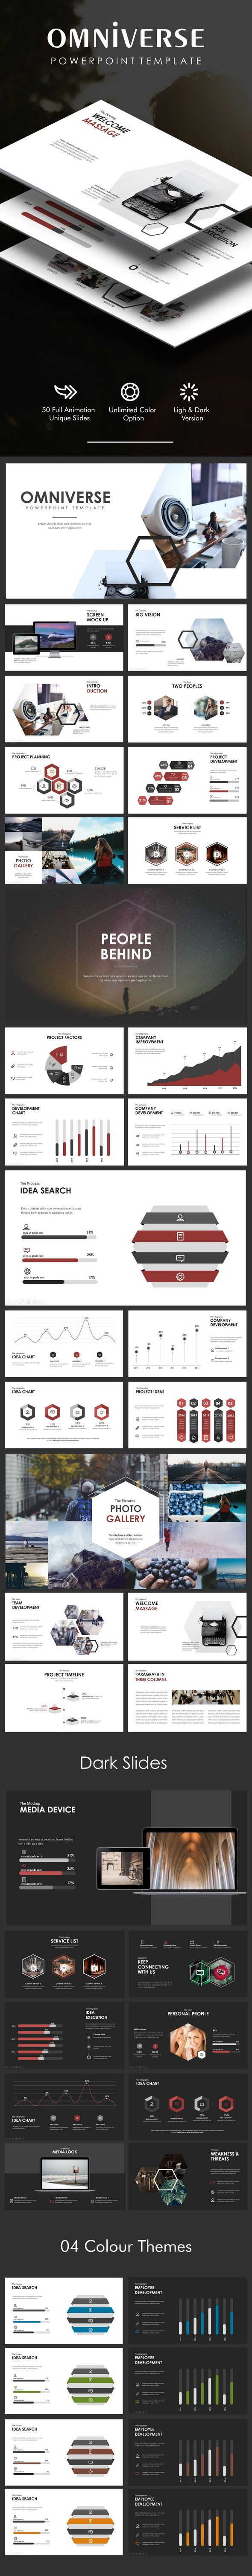 Omniverse Powerpoint Template - Creative #PowerPoint #Templates Download here: https://graphicriver.net/item/omniverse-powerpoint-template/20293904?ref=alena994